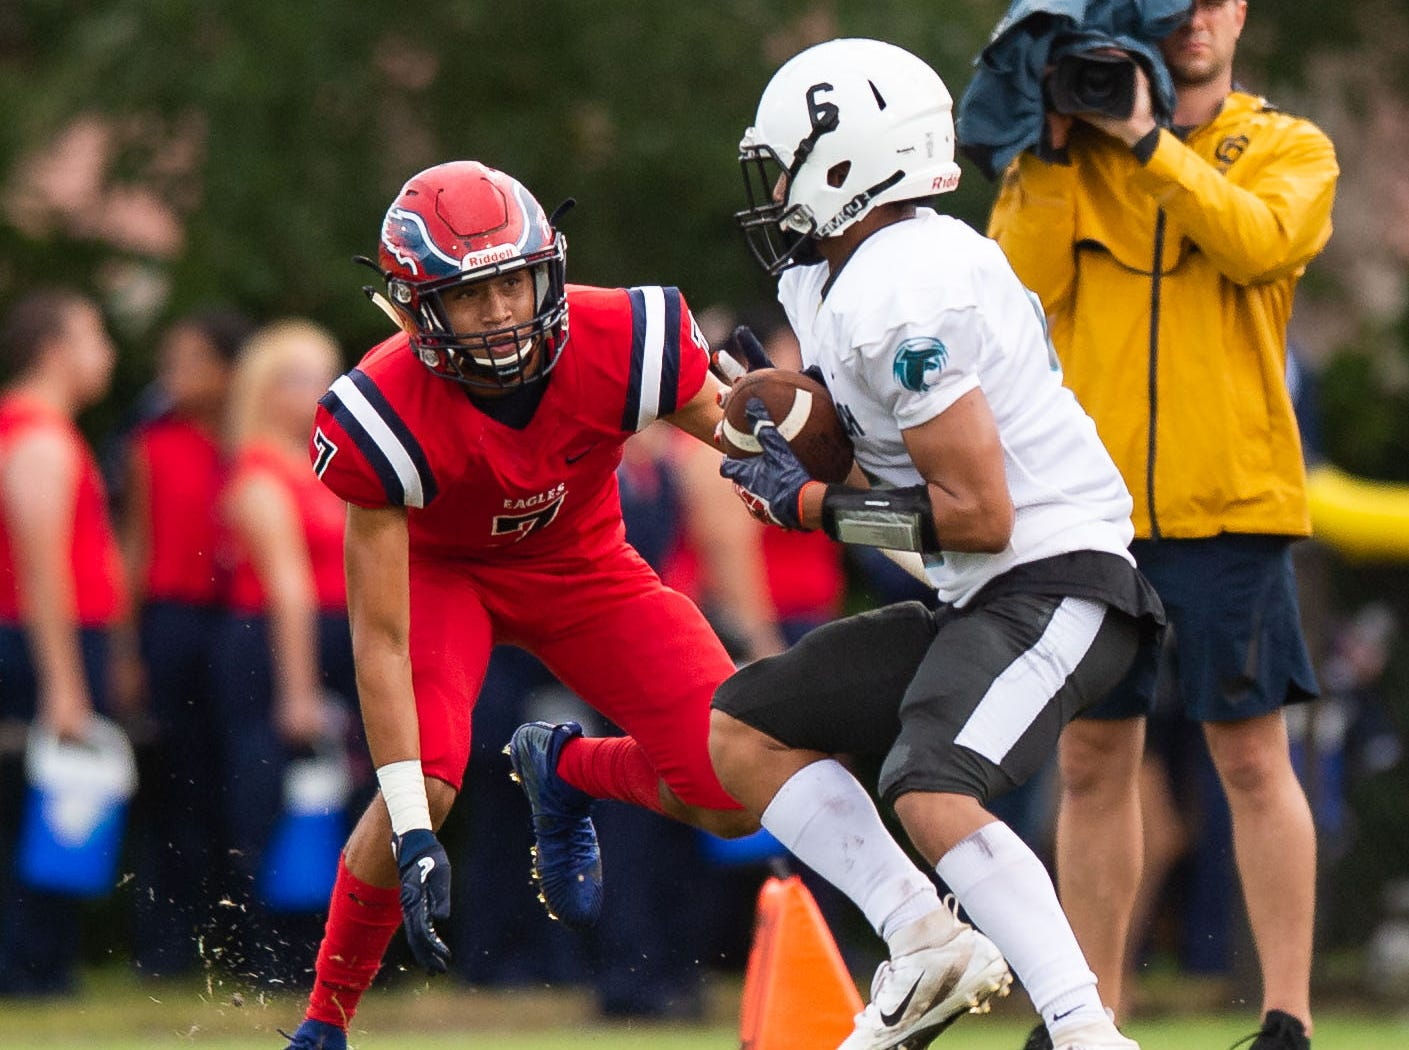 St. Lucie West Centennial plays against Jensen Beach during the high school football game Wednesday, Aug. 29, 2018, at South County Regional Stadium in Port St. Lucie.